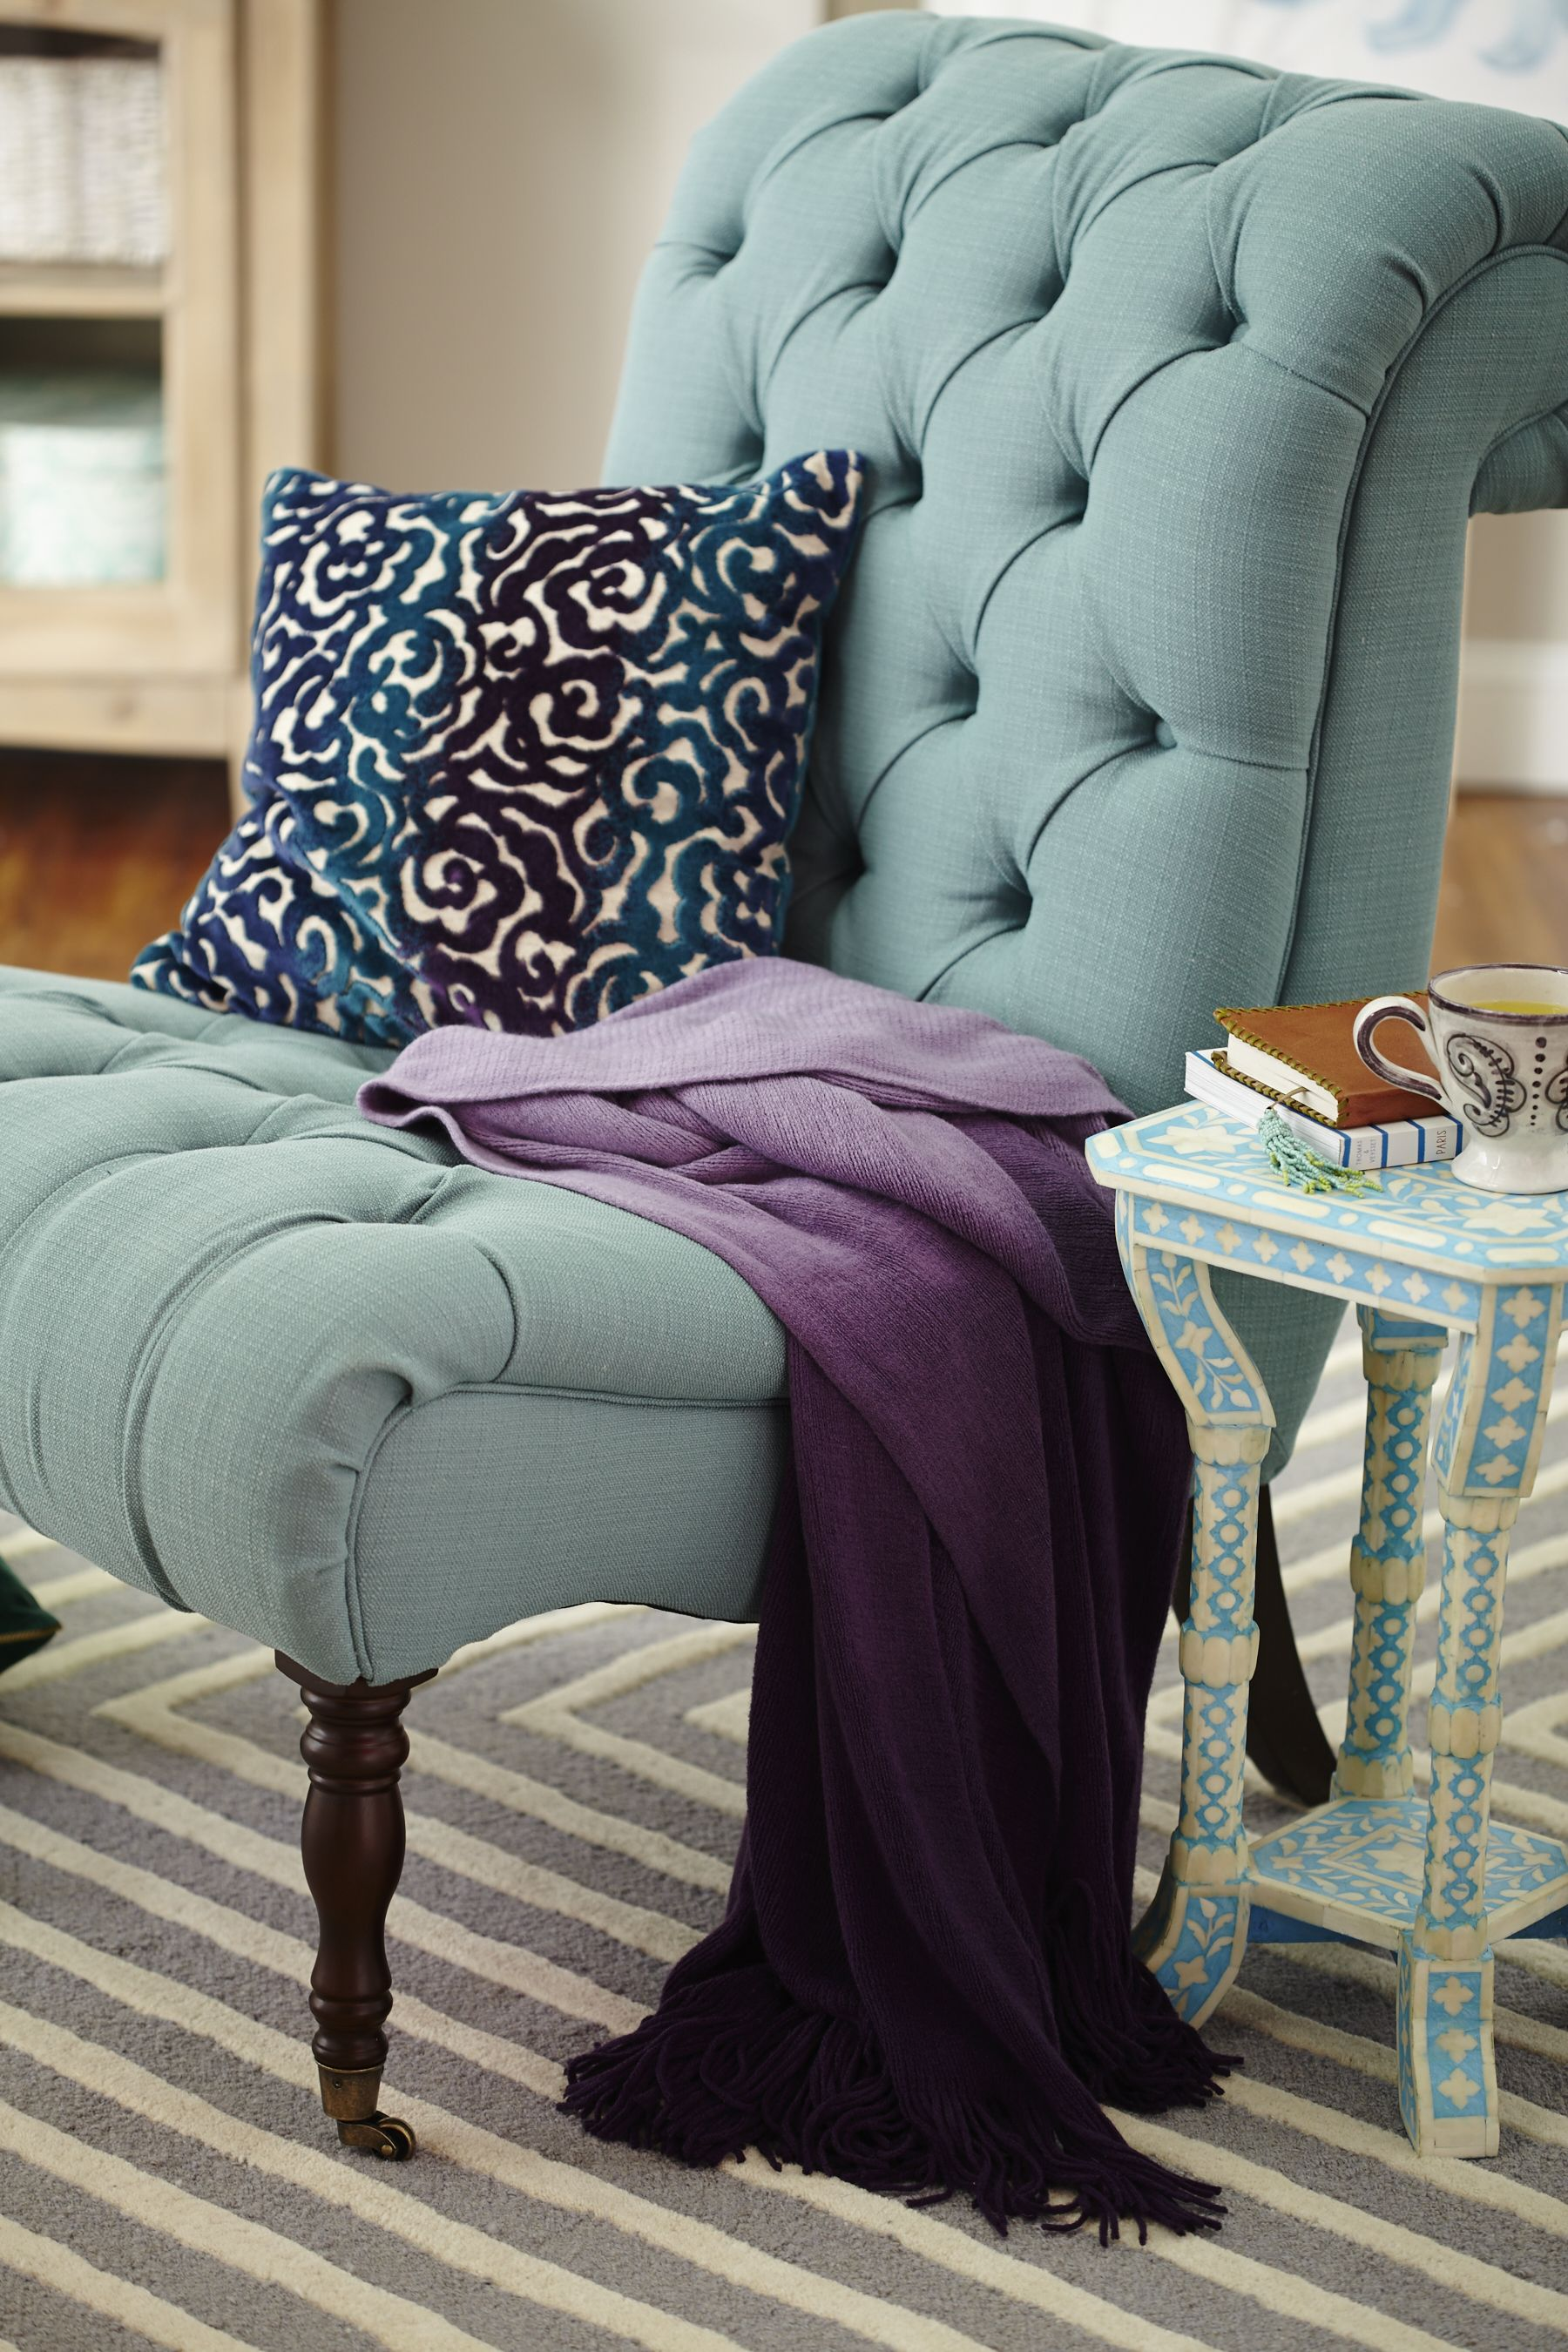 Sitting Pretty Sofas Fabric Sofa Covers India At A Perfect Price Is Homegoodshappy Any